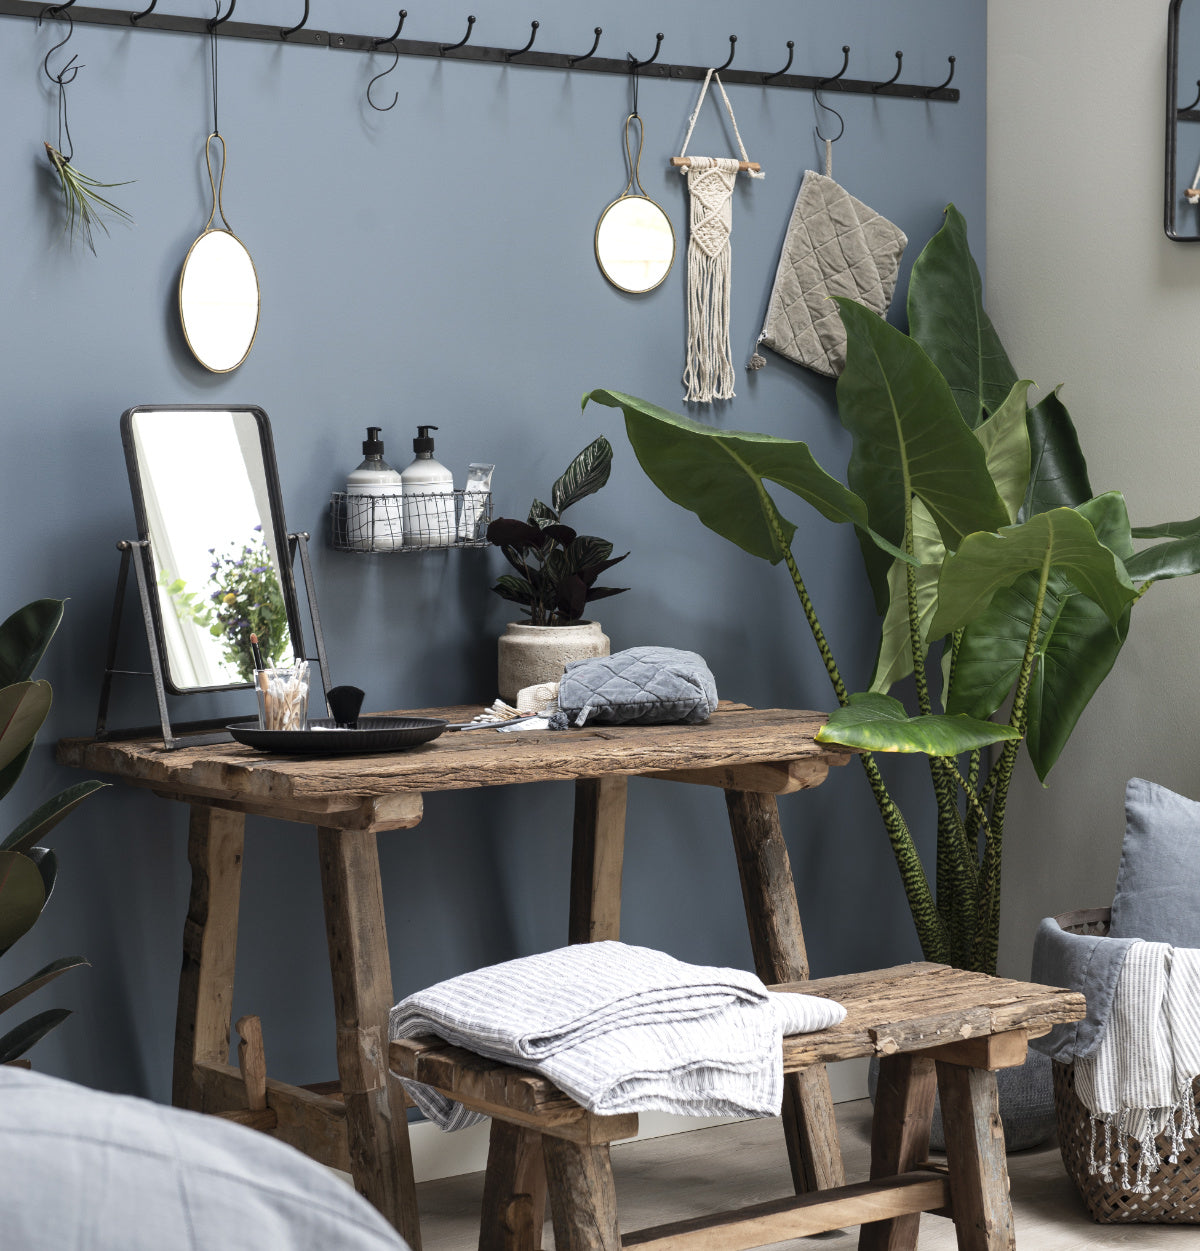 Rustic style home decor